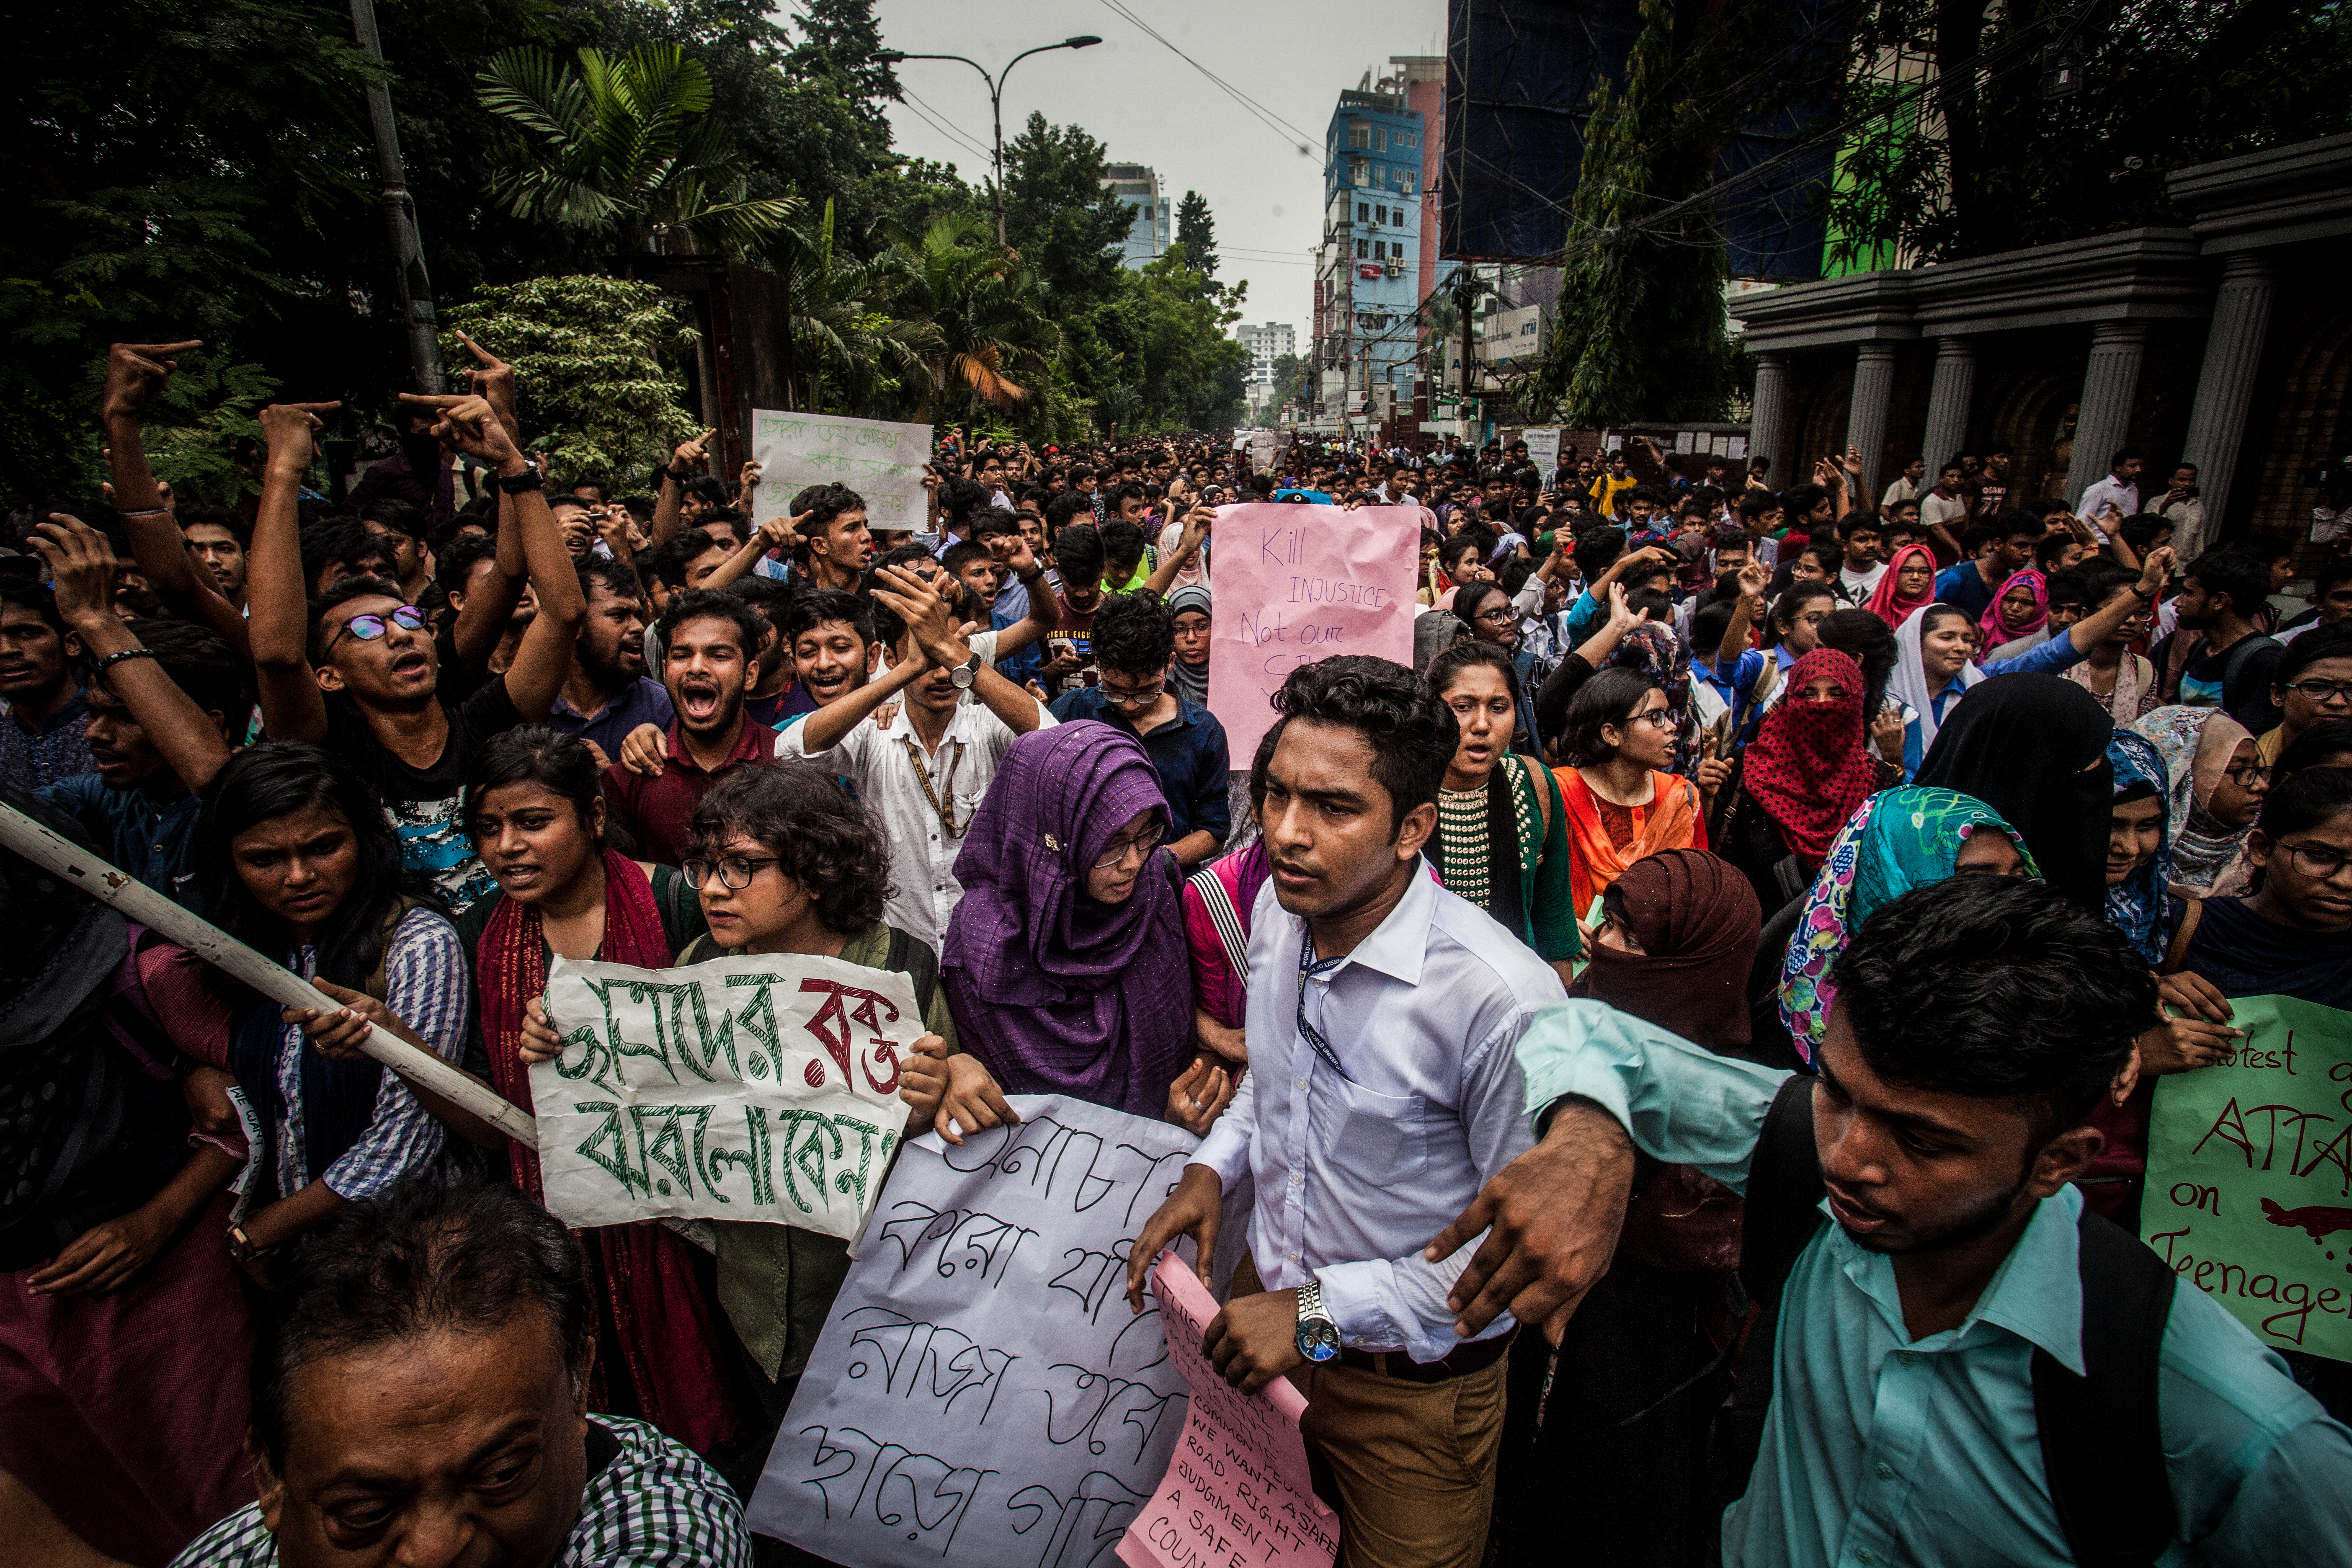 Bangladeshi students march along a street during a student protest in Dhaka on Aug. 5, 2018, following the deaths of two college students in a road accident.